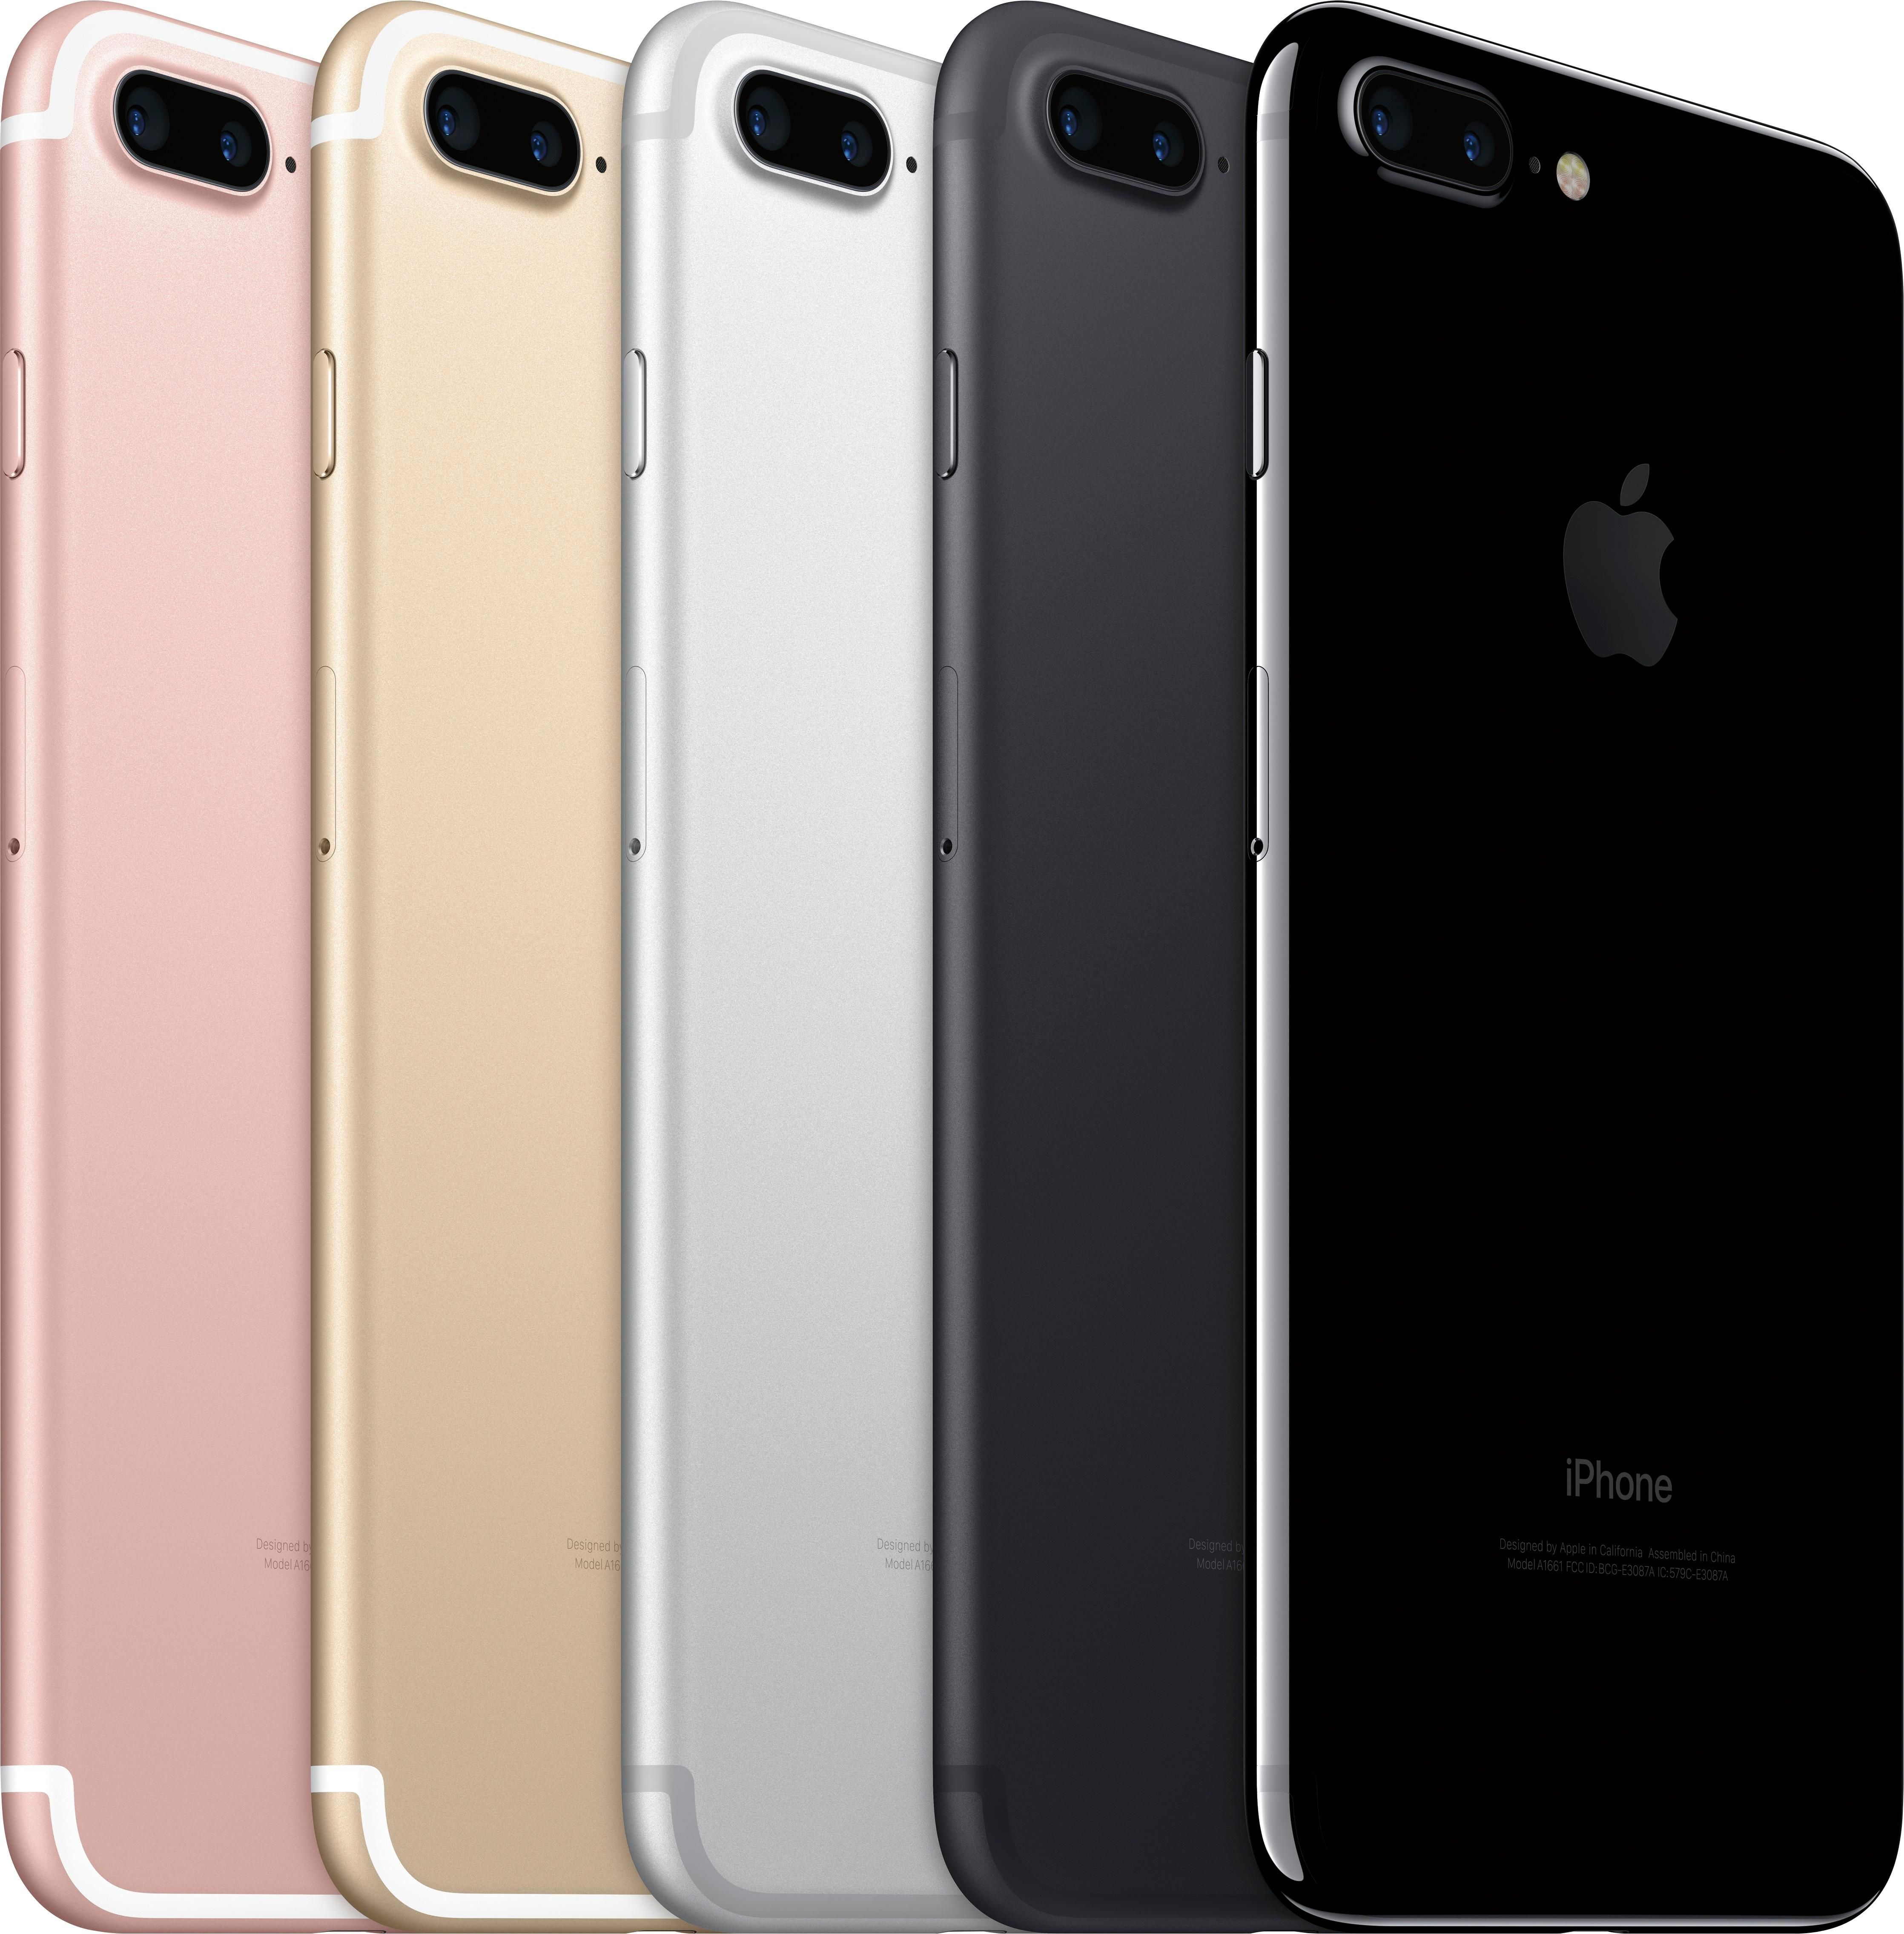 Best Buy Apple Iphone 7 Plus 32gb Black At T Mnqh2ll A Iphone 7 Plus Iphone Screen Repair Iphone